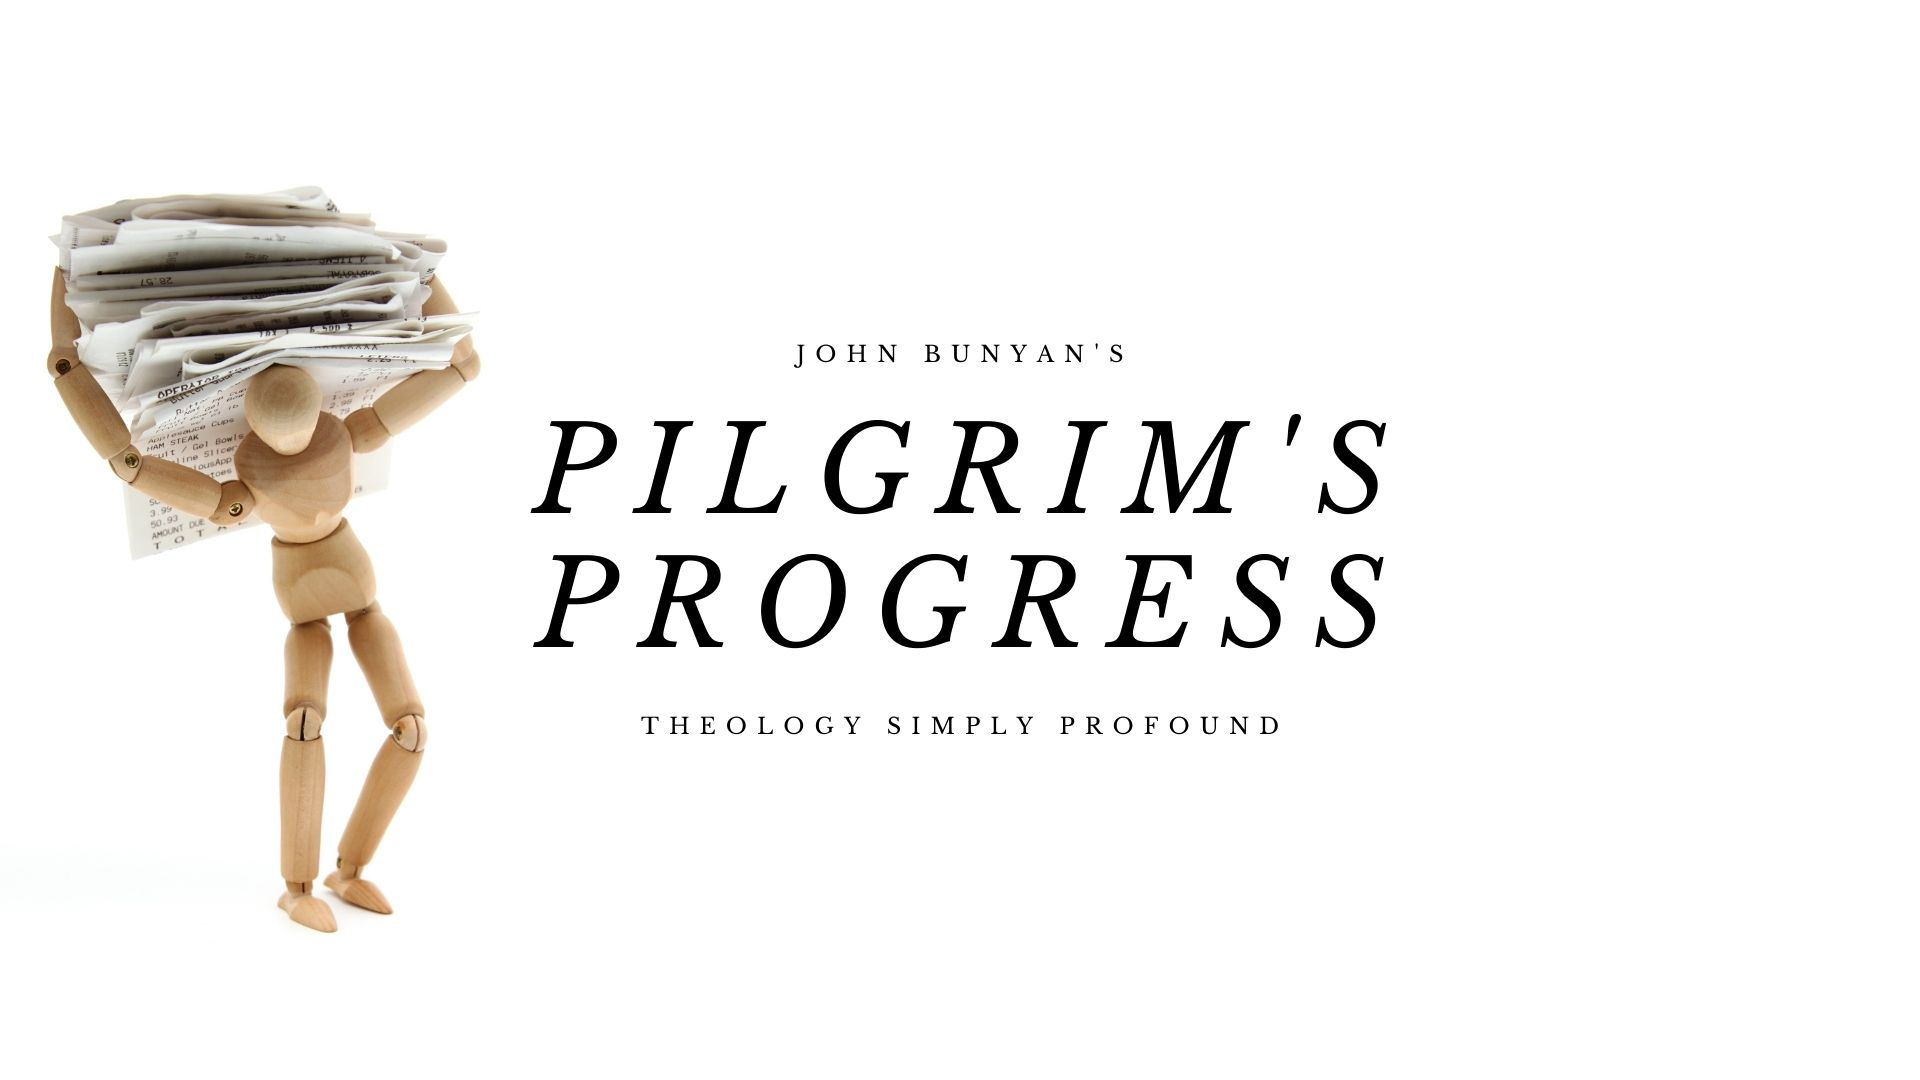 The Pilgrim's Progress banner